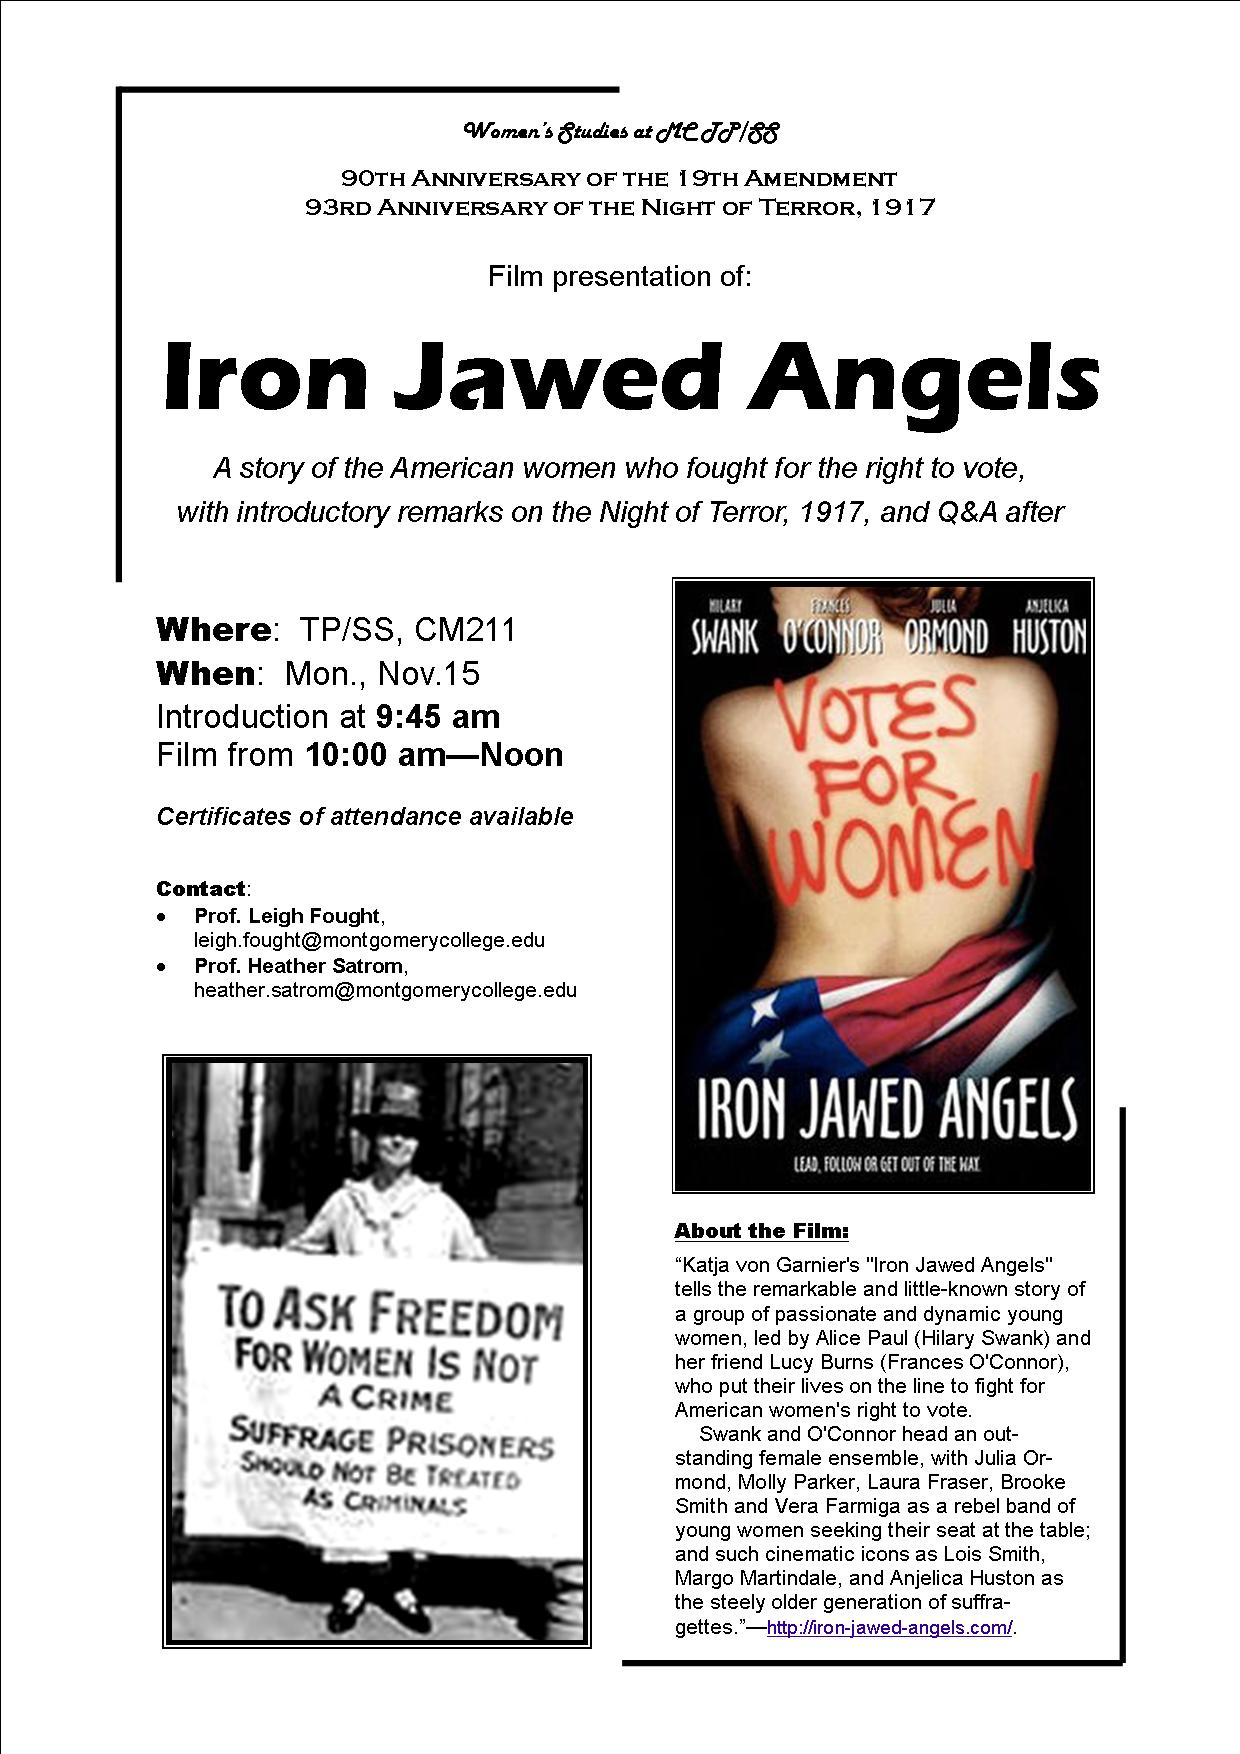 iron jawed angels analysis essay